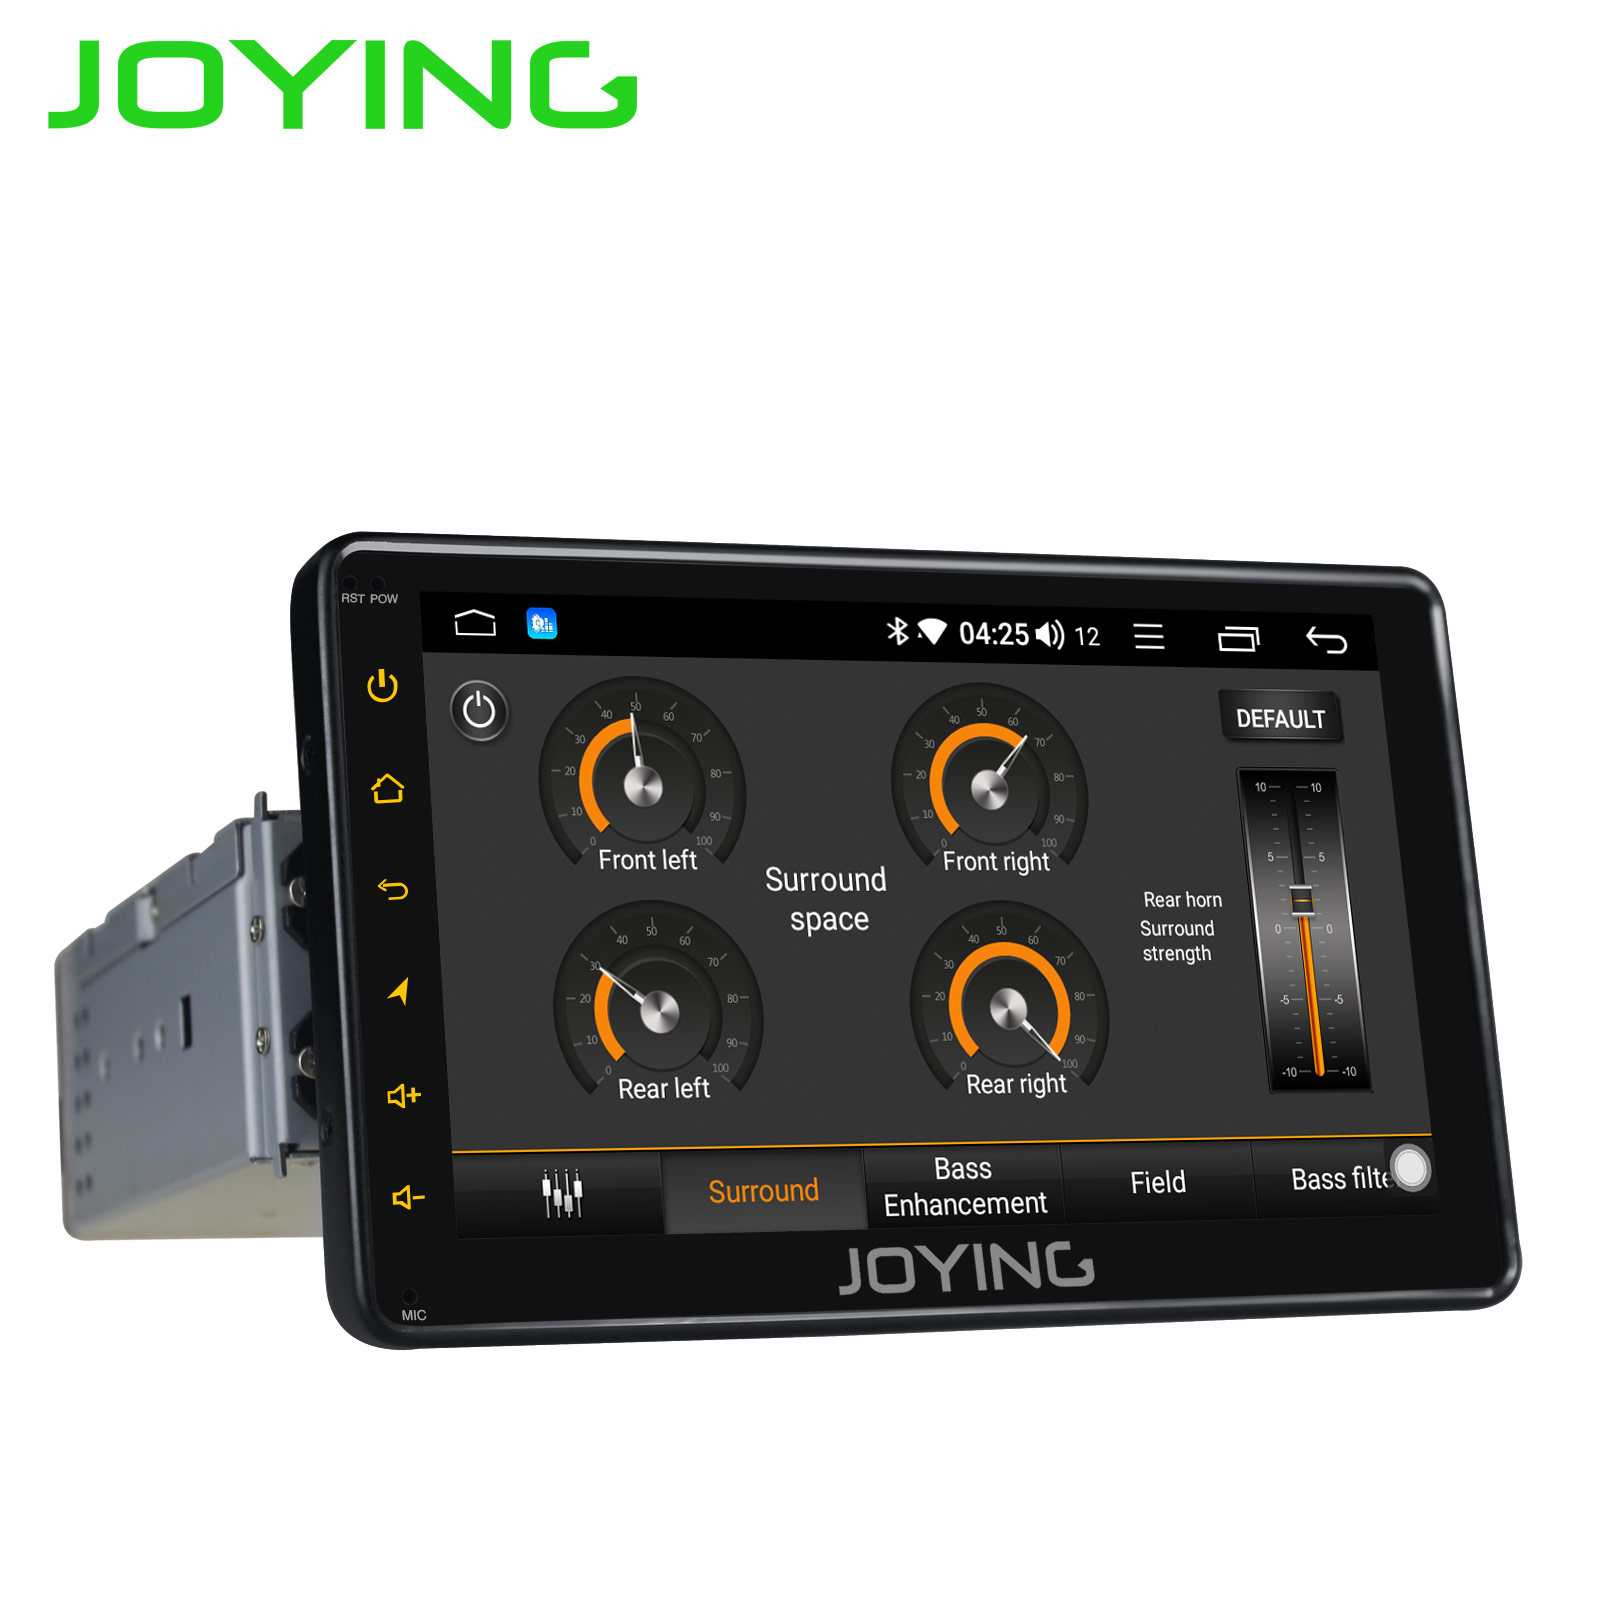 """7""""Android 8.1 Car Radio Stereo Octa Core GPS Navigation 2GB+32GB Universal Head Unit Built in DSP Mirror link NO DVD FM Player-in Car Multimedia Player from Automobiles & Motorcycles    2"""